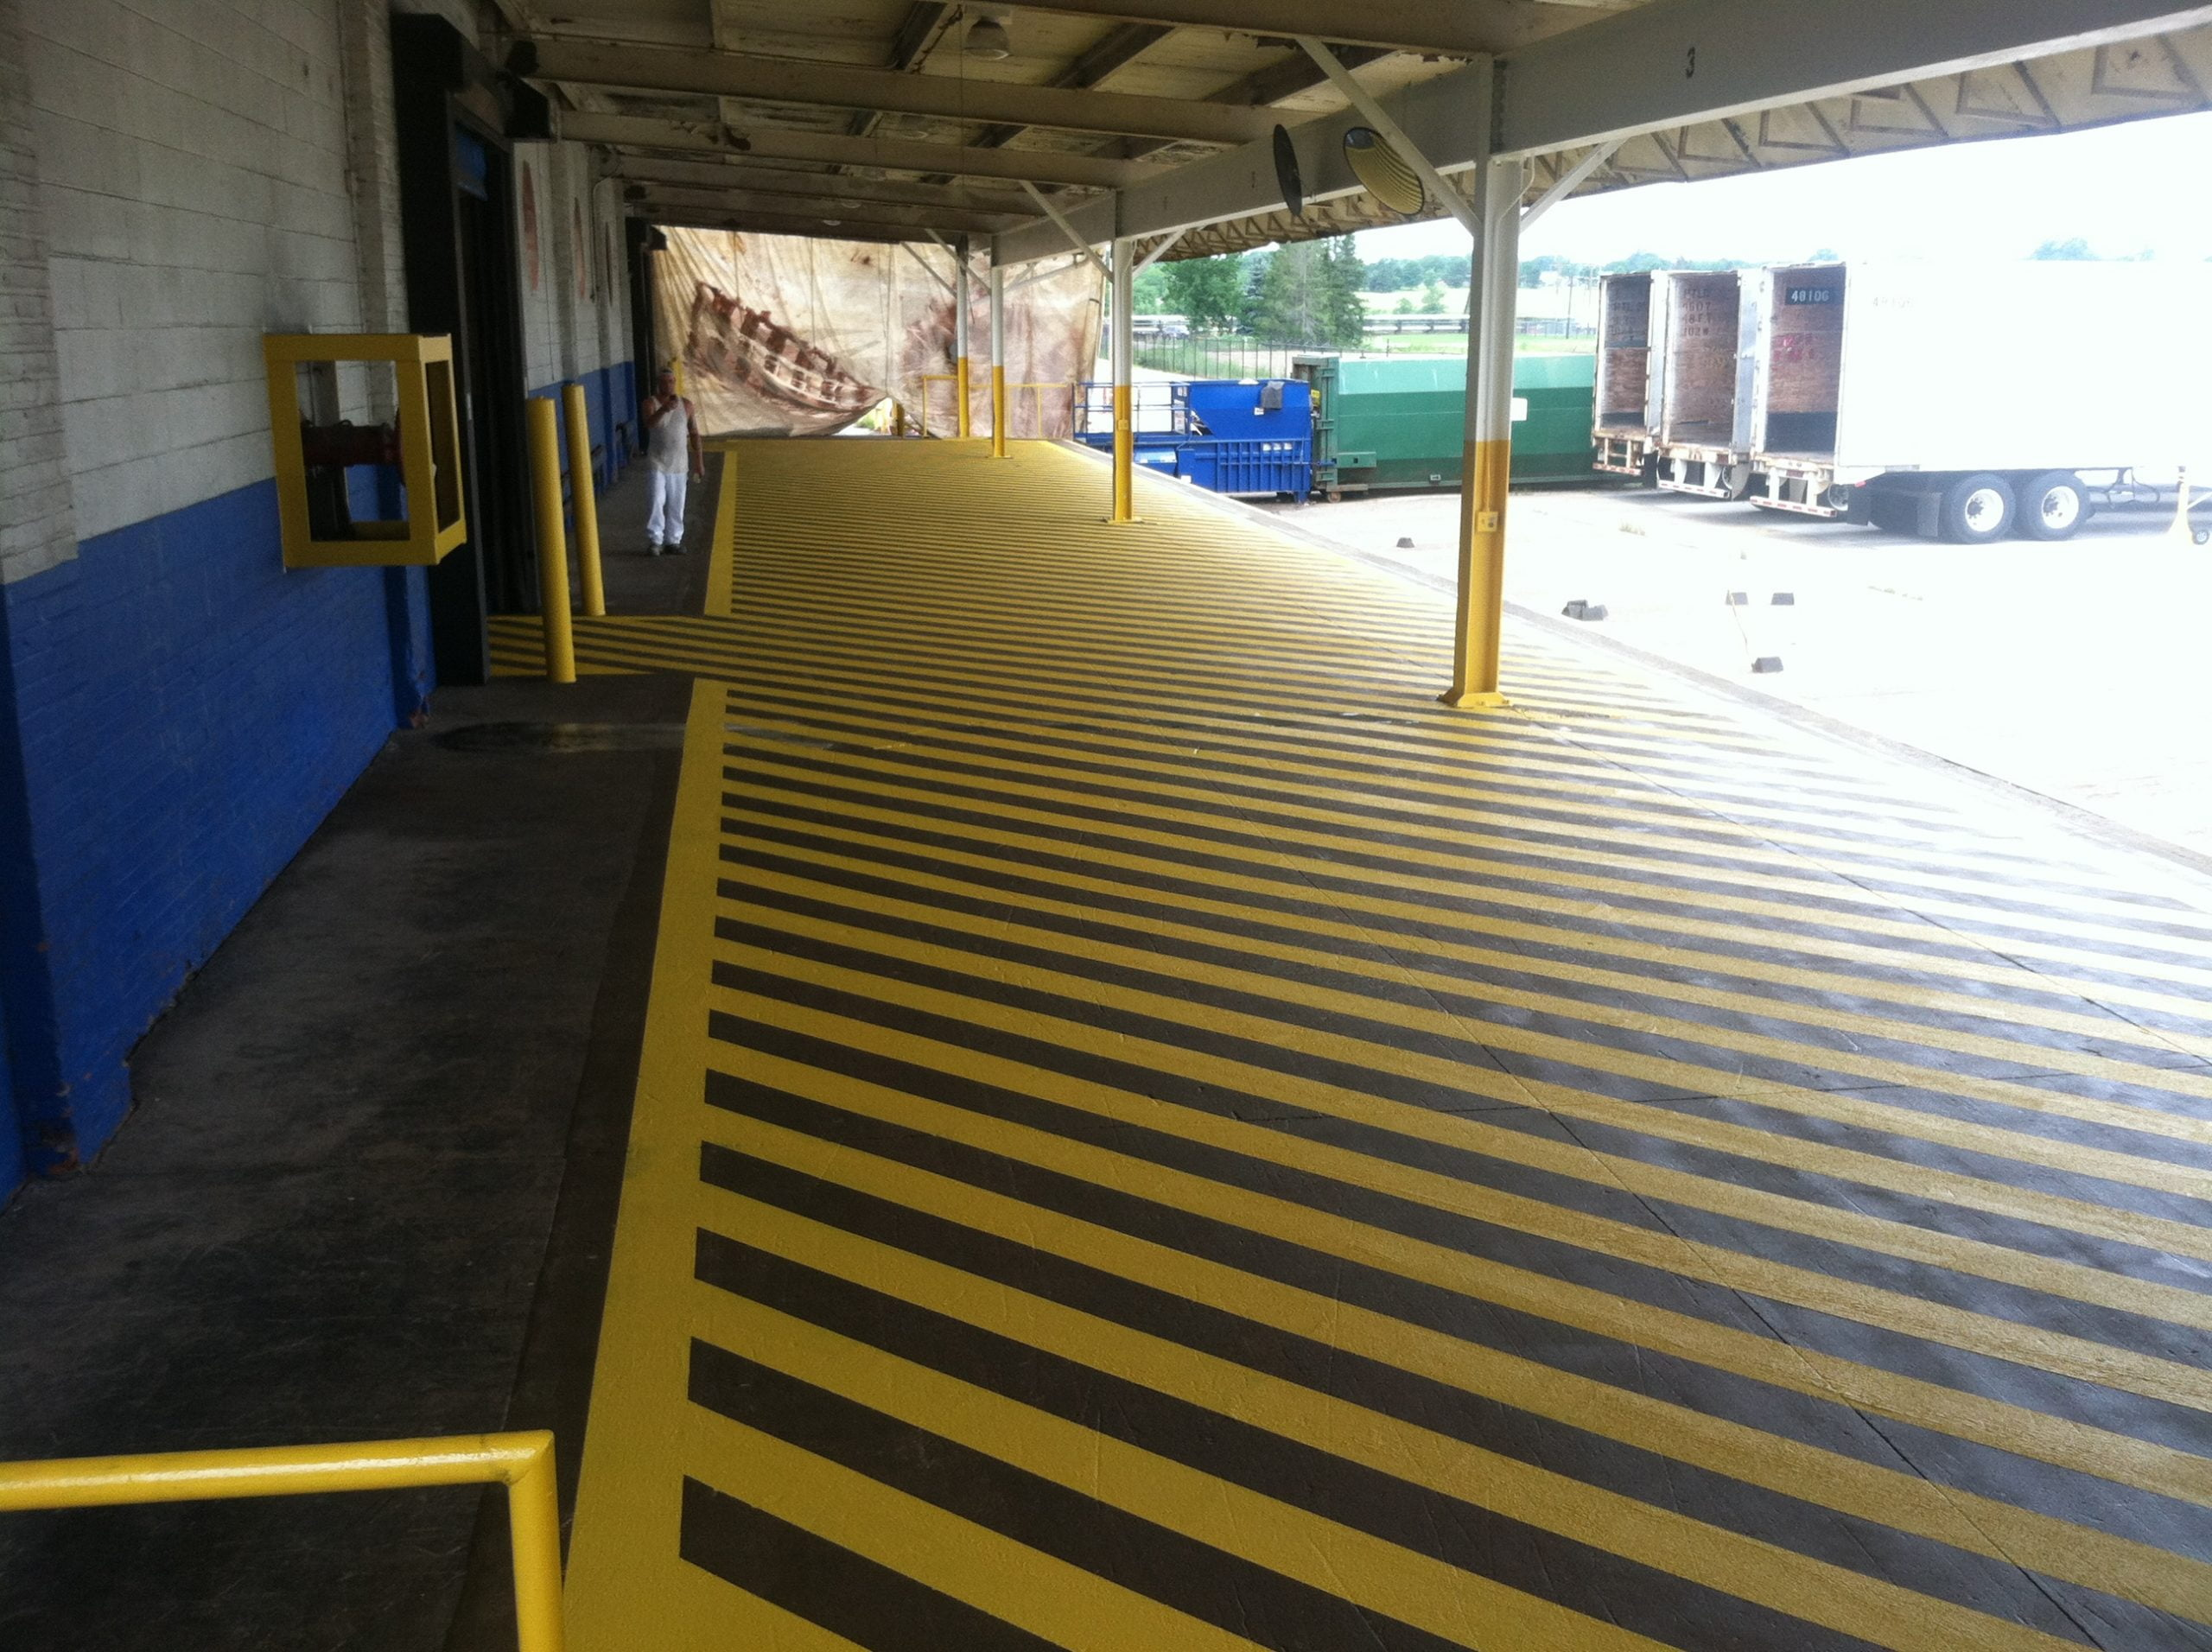 Loading Dock After Asile Stripping And Textured Paint To Prevent Slipping And Images